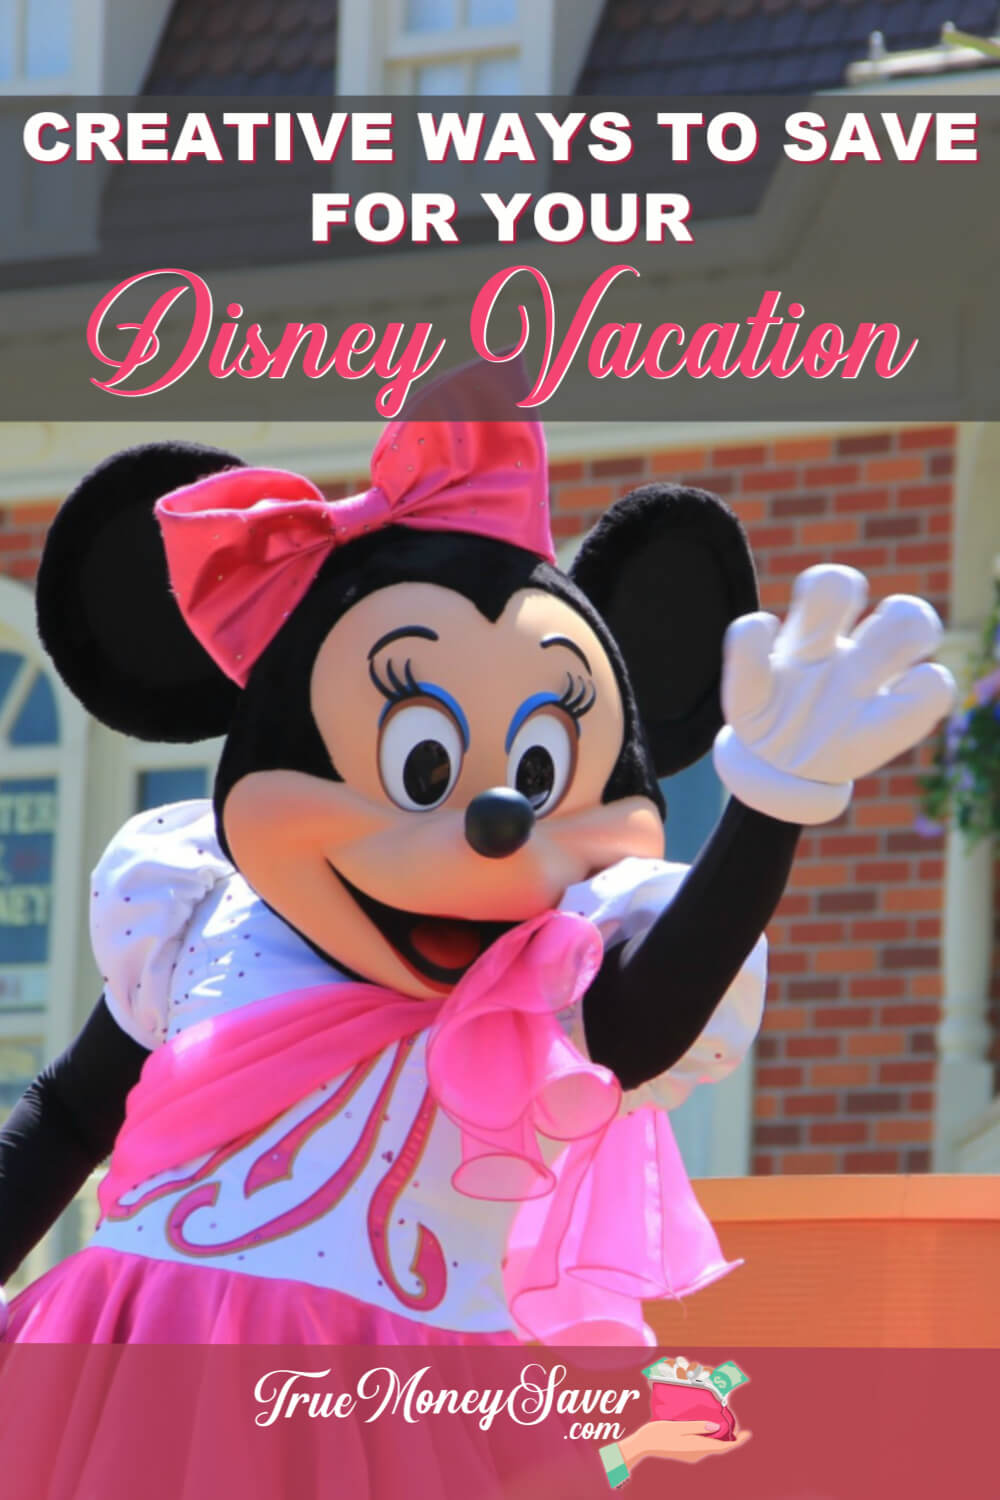 Need to boost your Disney vacation fund? You save up more for your trip without having to get a second job. #truemoneysaver #savings #disney #familyvacation #debtfree #disneymagic #disneyaddict #disneylove